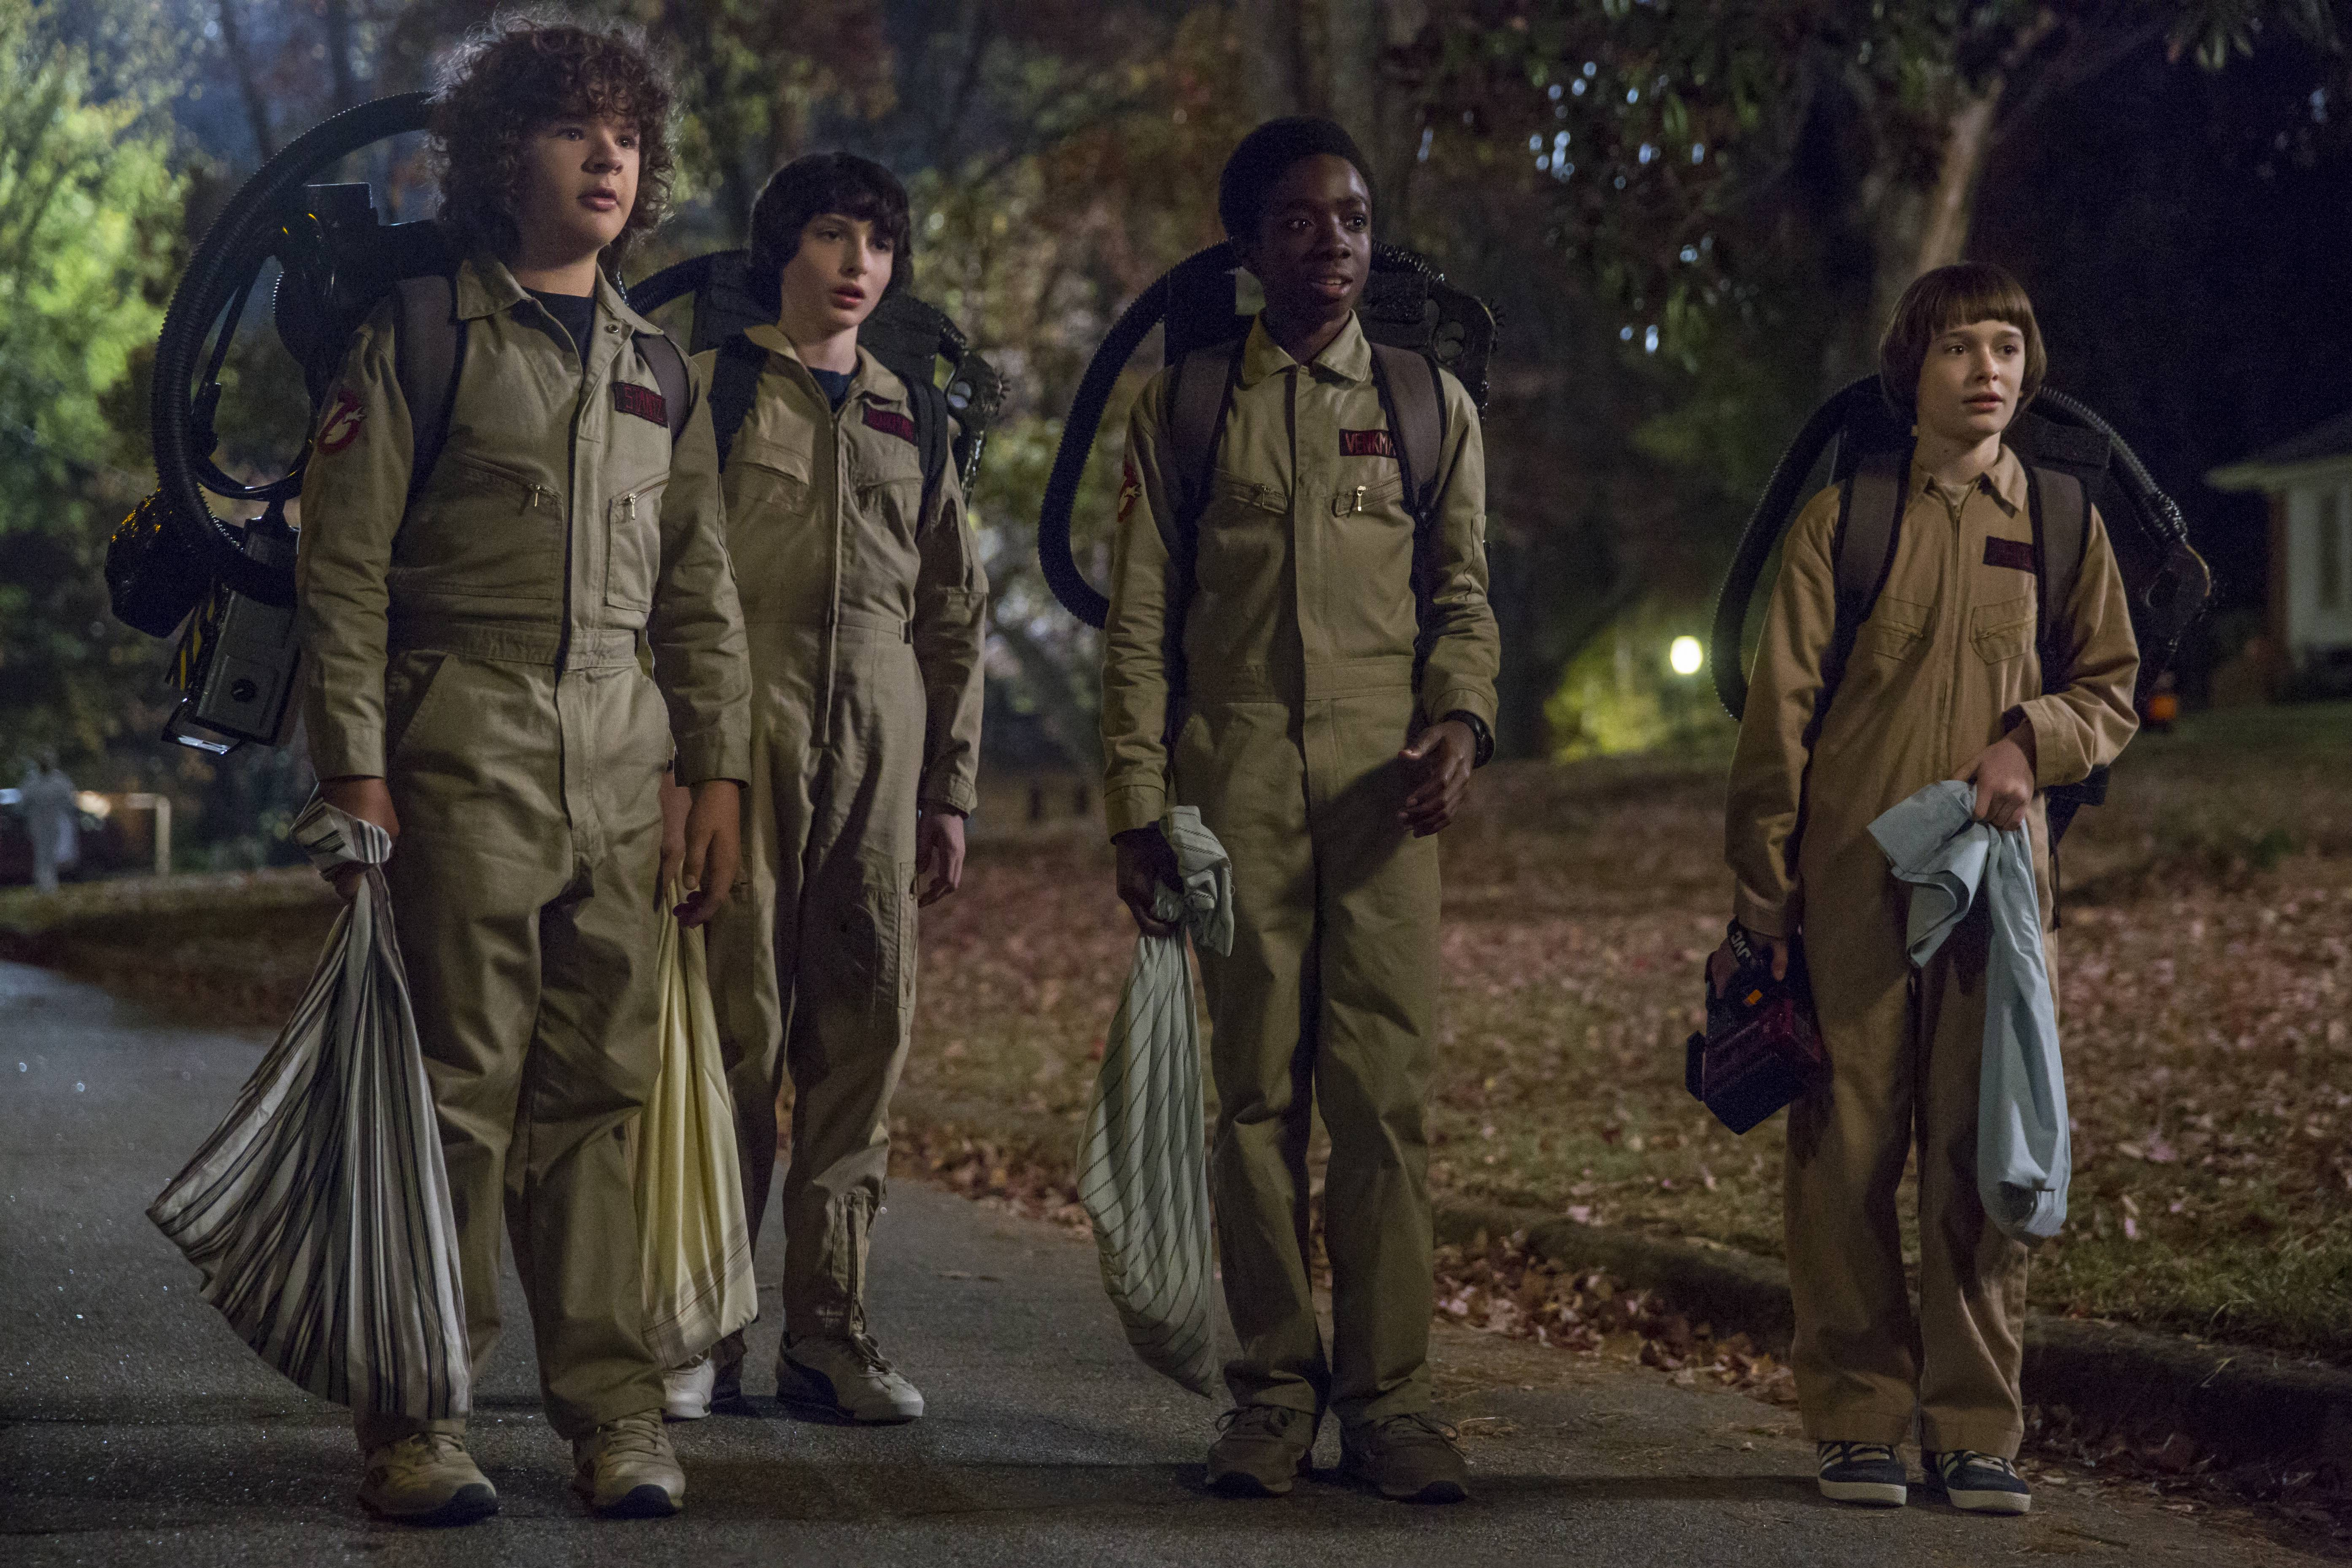 stranger-things-season-2-official-stills-005.jpg